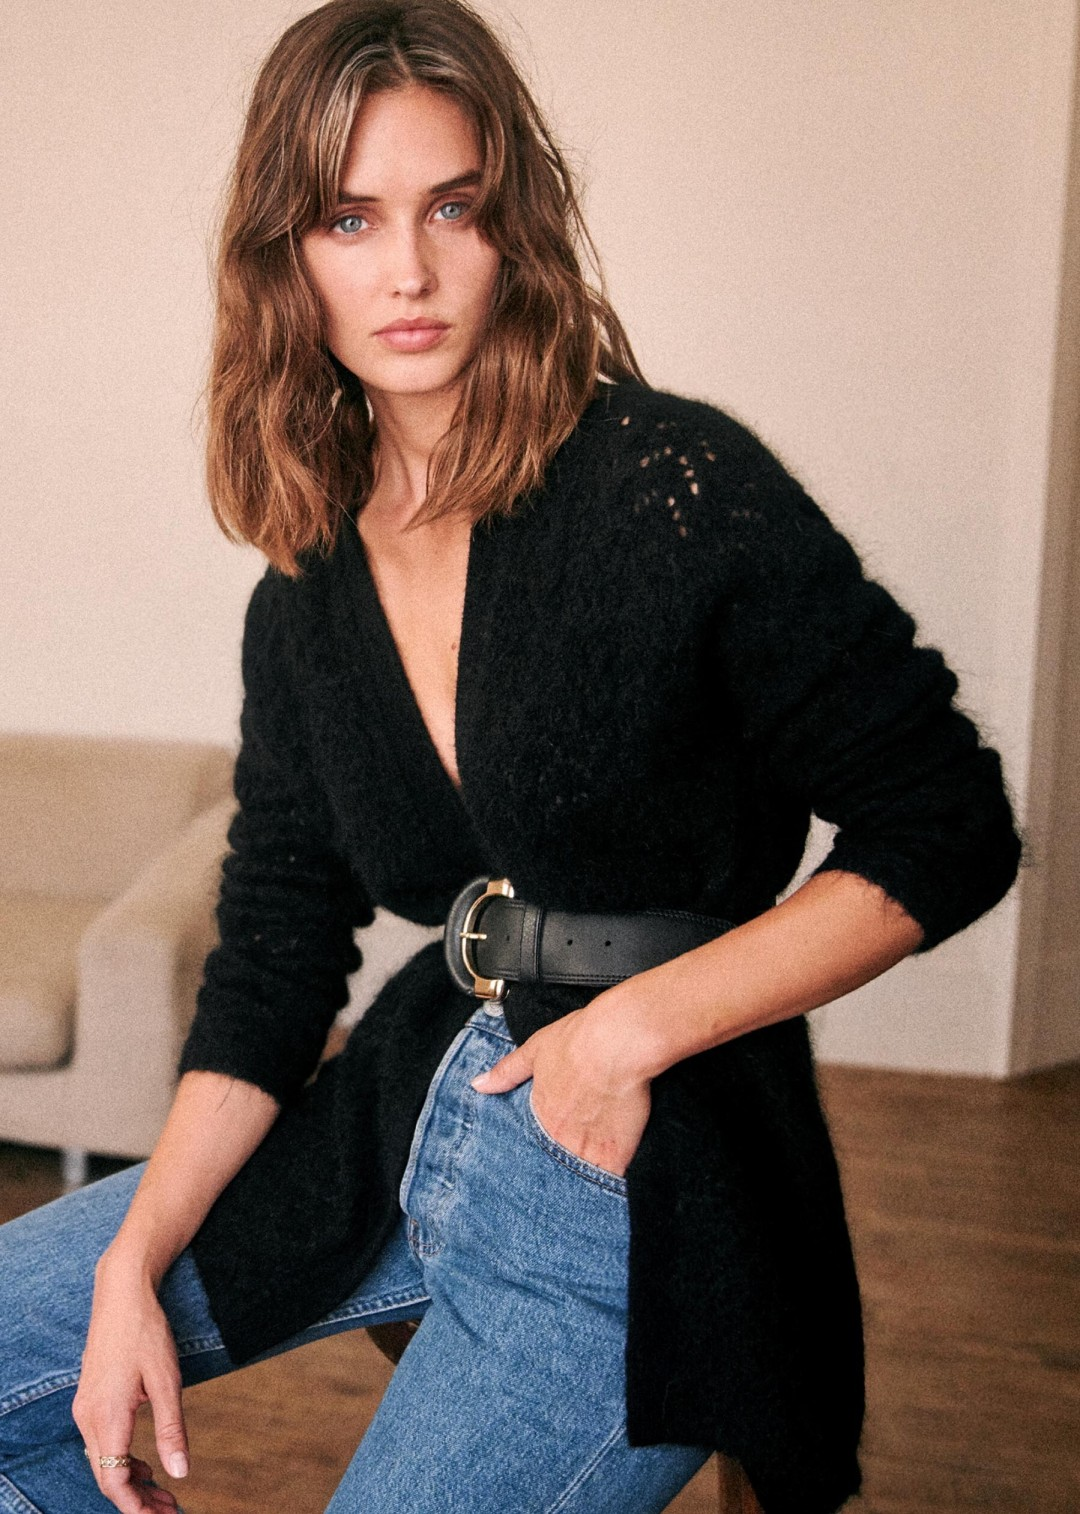 An Insanely Chic Way to Wear a Cardigan — Belt and High-Waist Jeans